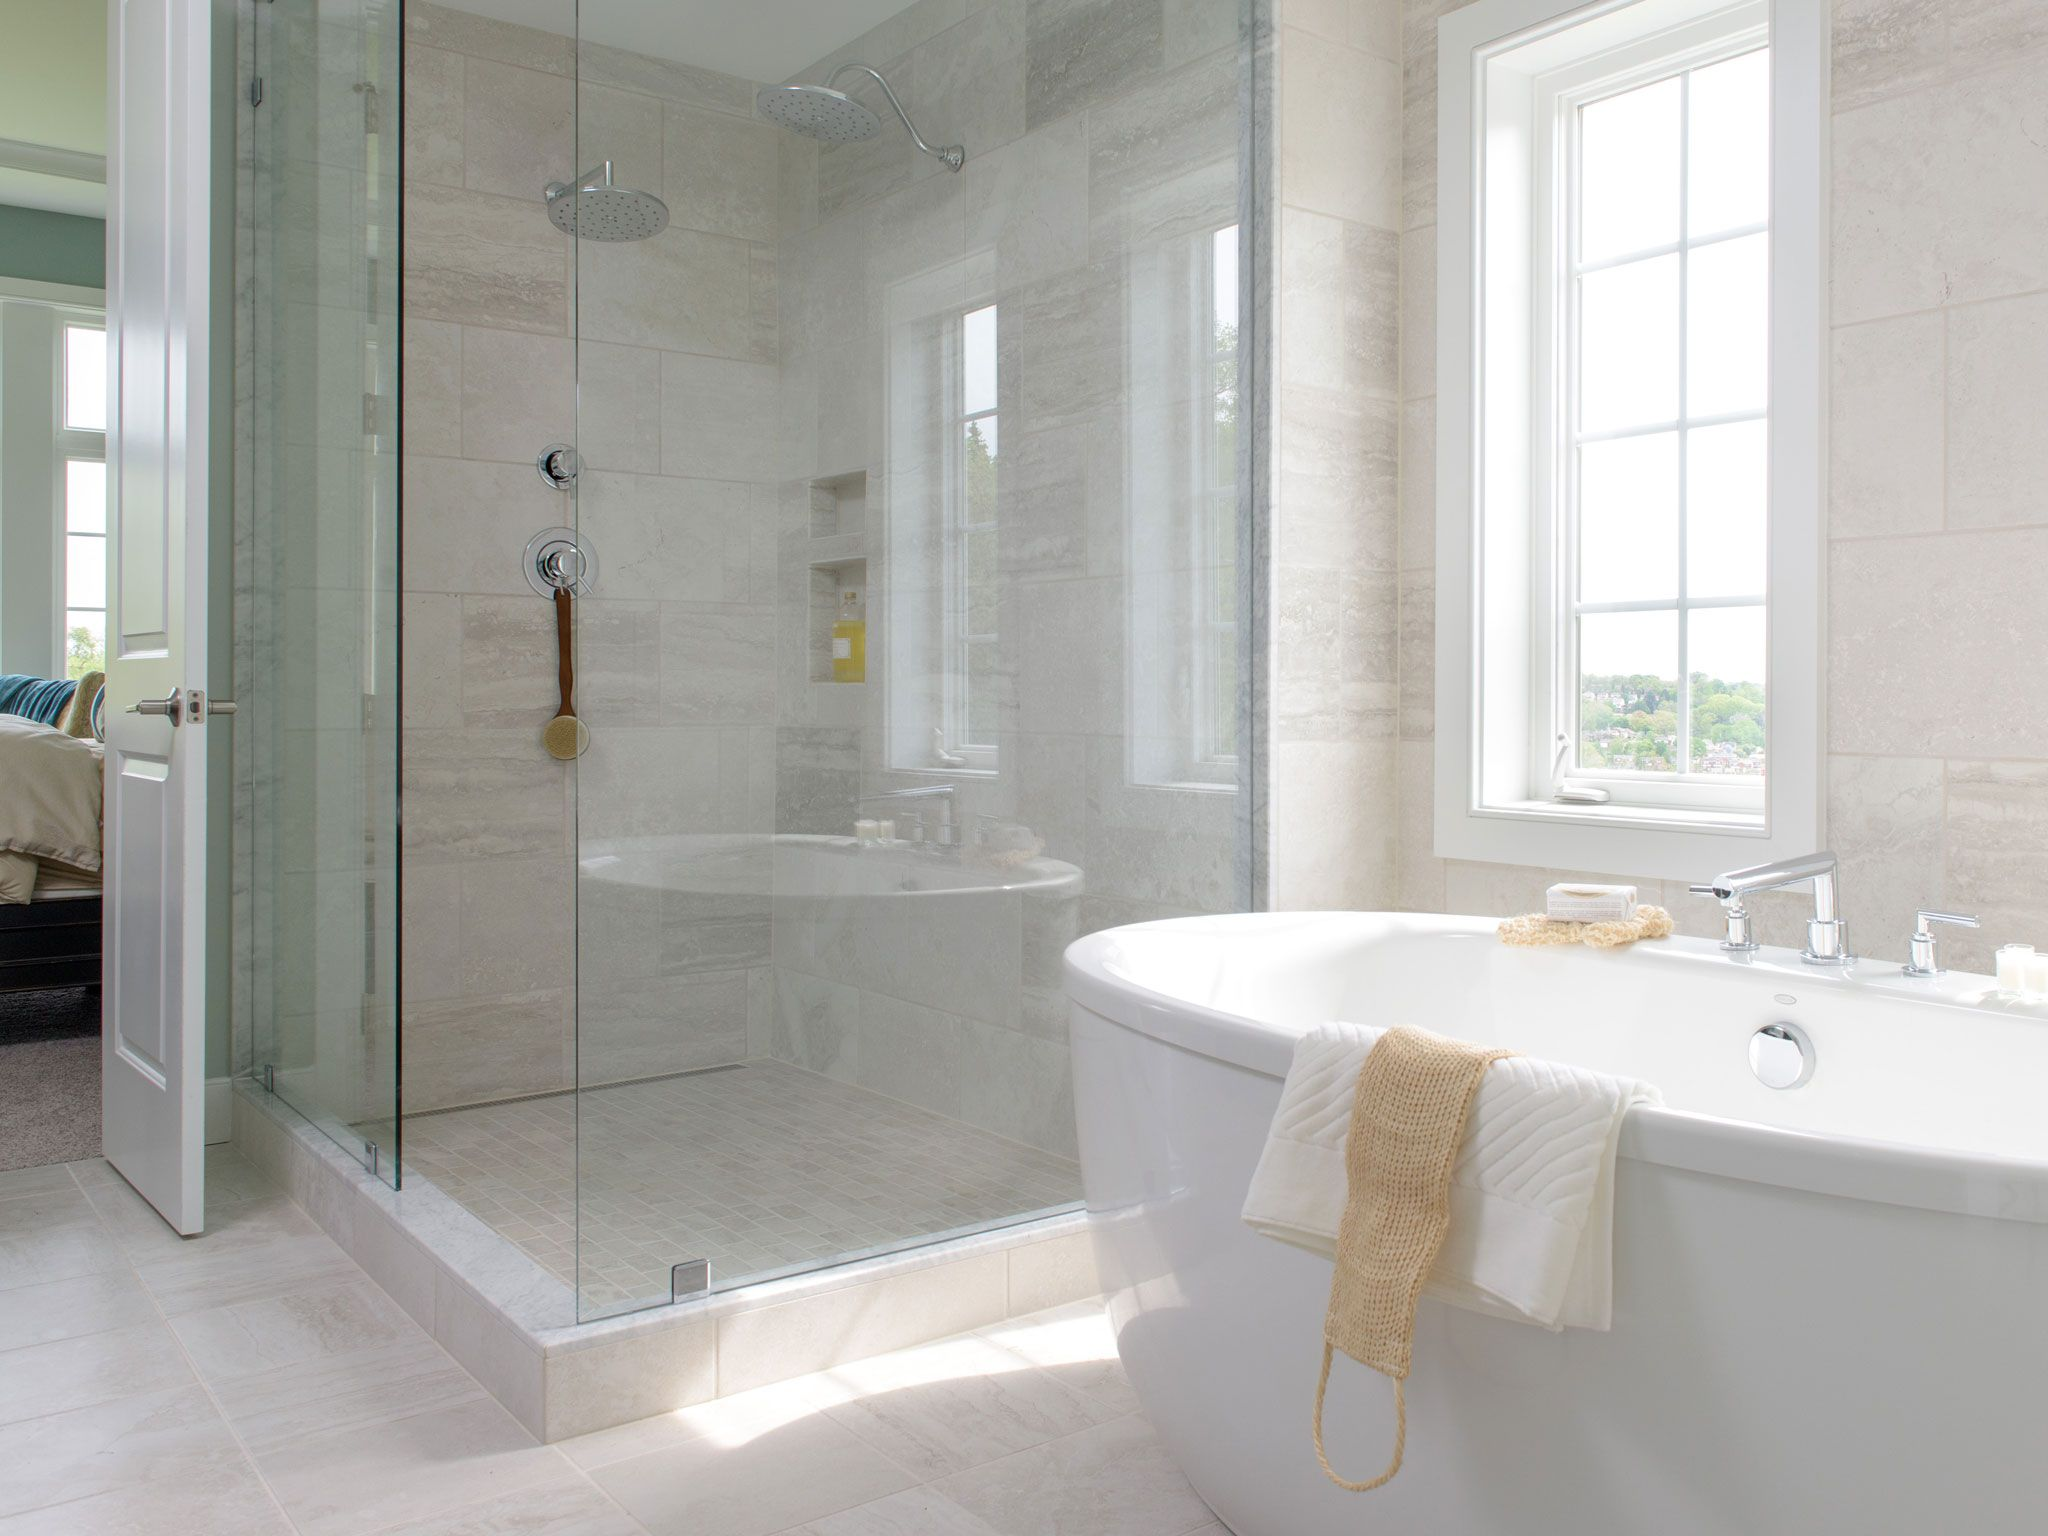 Bathroom featured in the Finch By Charter Homes & Neighborhoods  in Harrisburg, PA